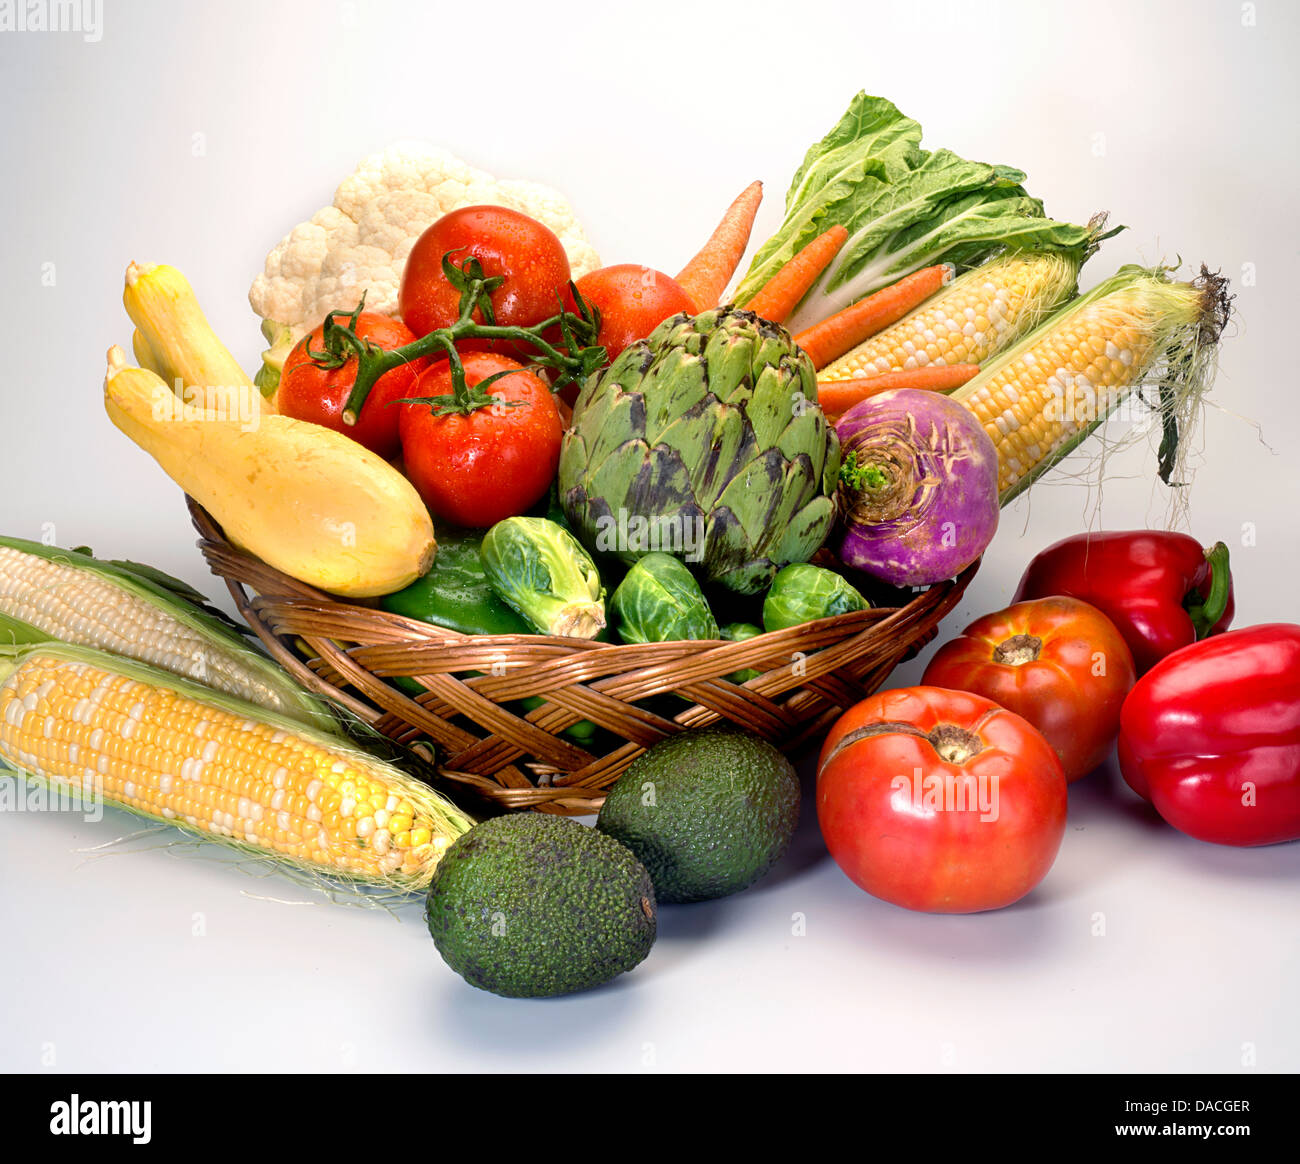 légumes Photo Stock